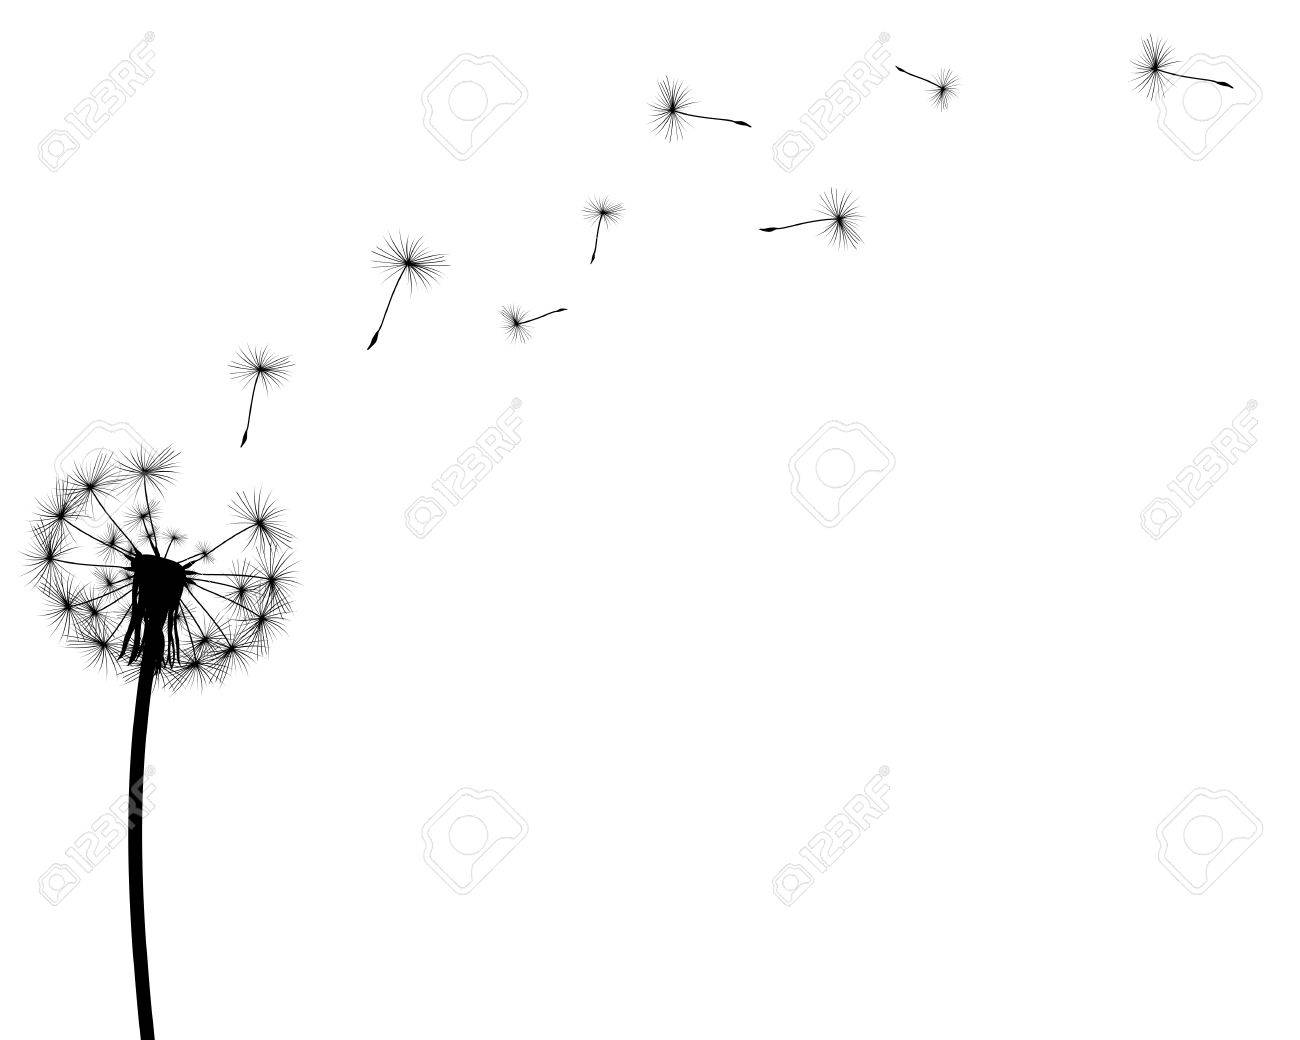 black silhouette with flying dandelion buds on a white background - 50904329